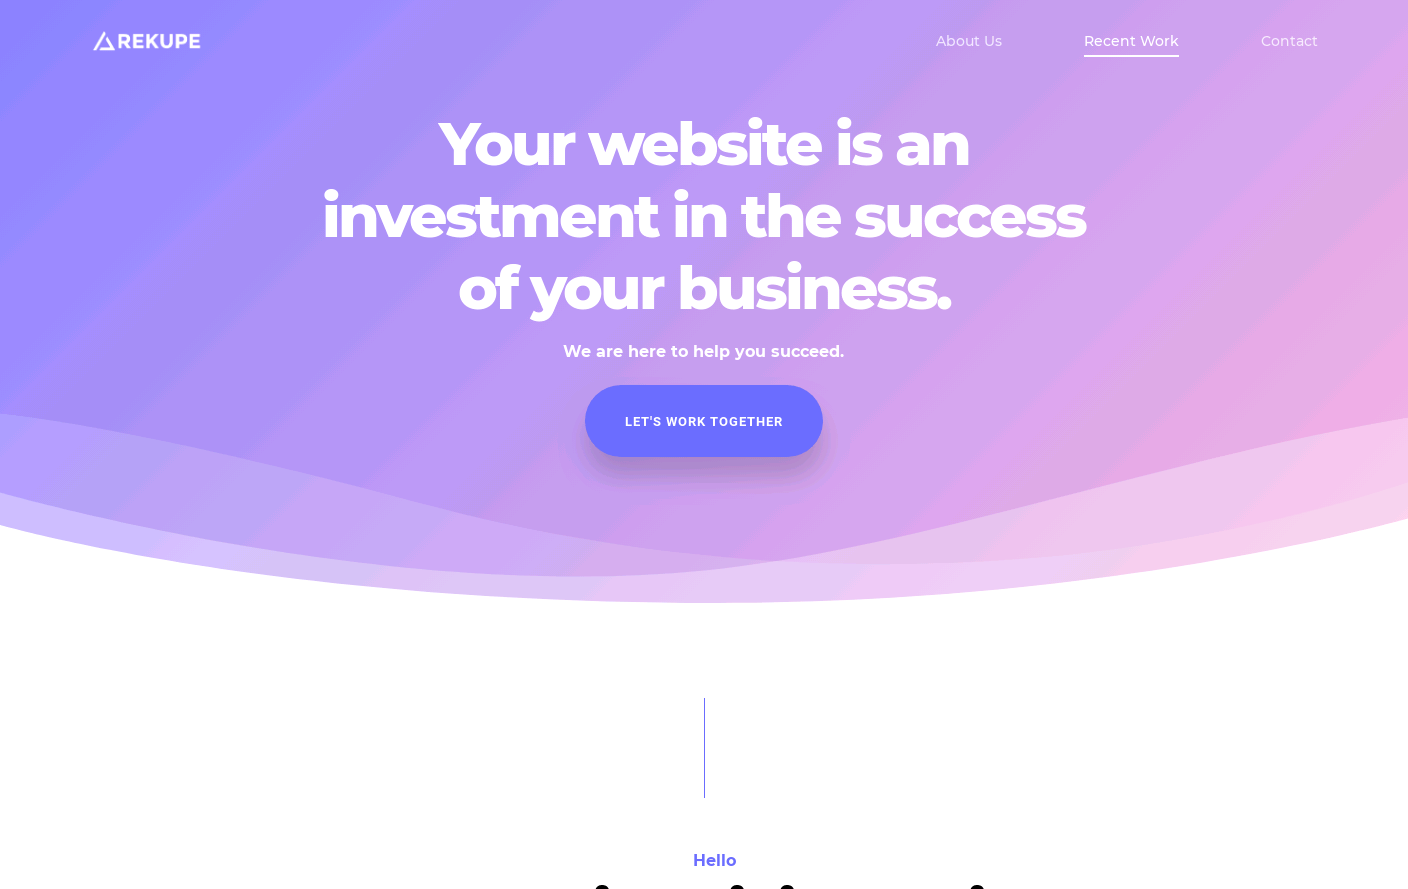 Rekupe - Los Angeles Based Web Design Agency